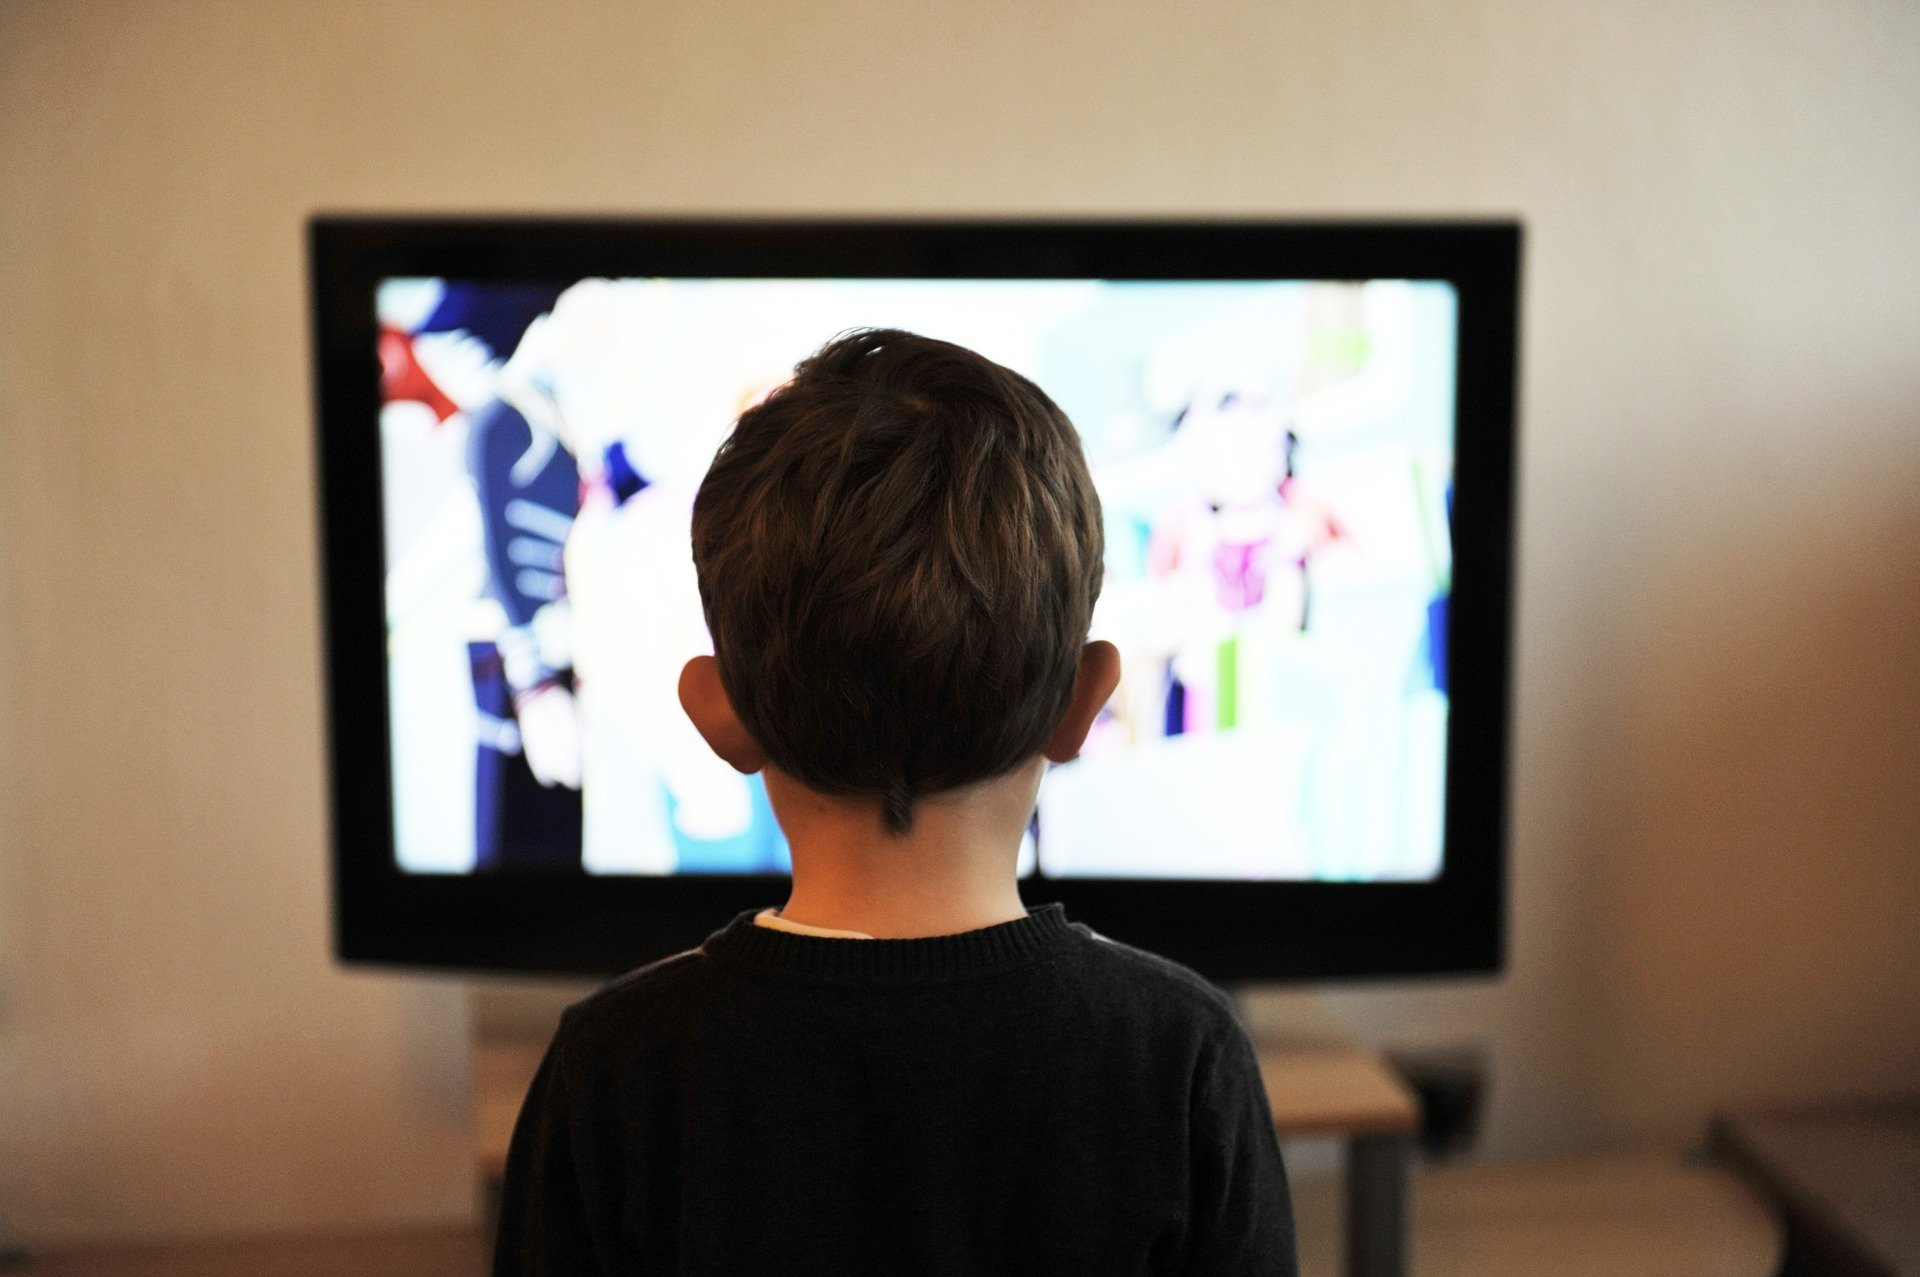 child screen time tv addiction tech